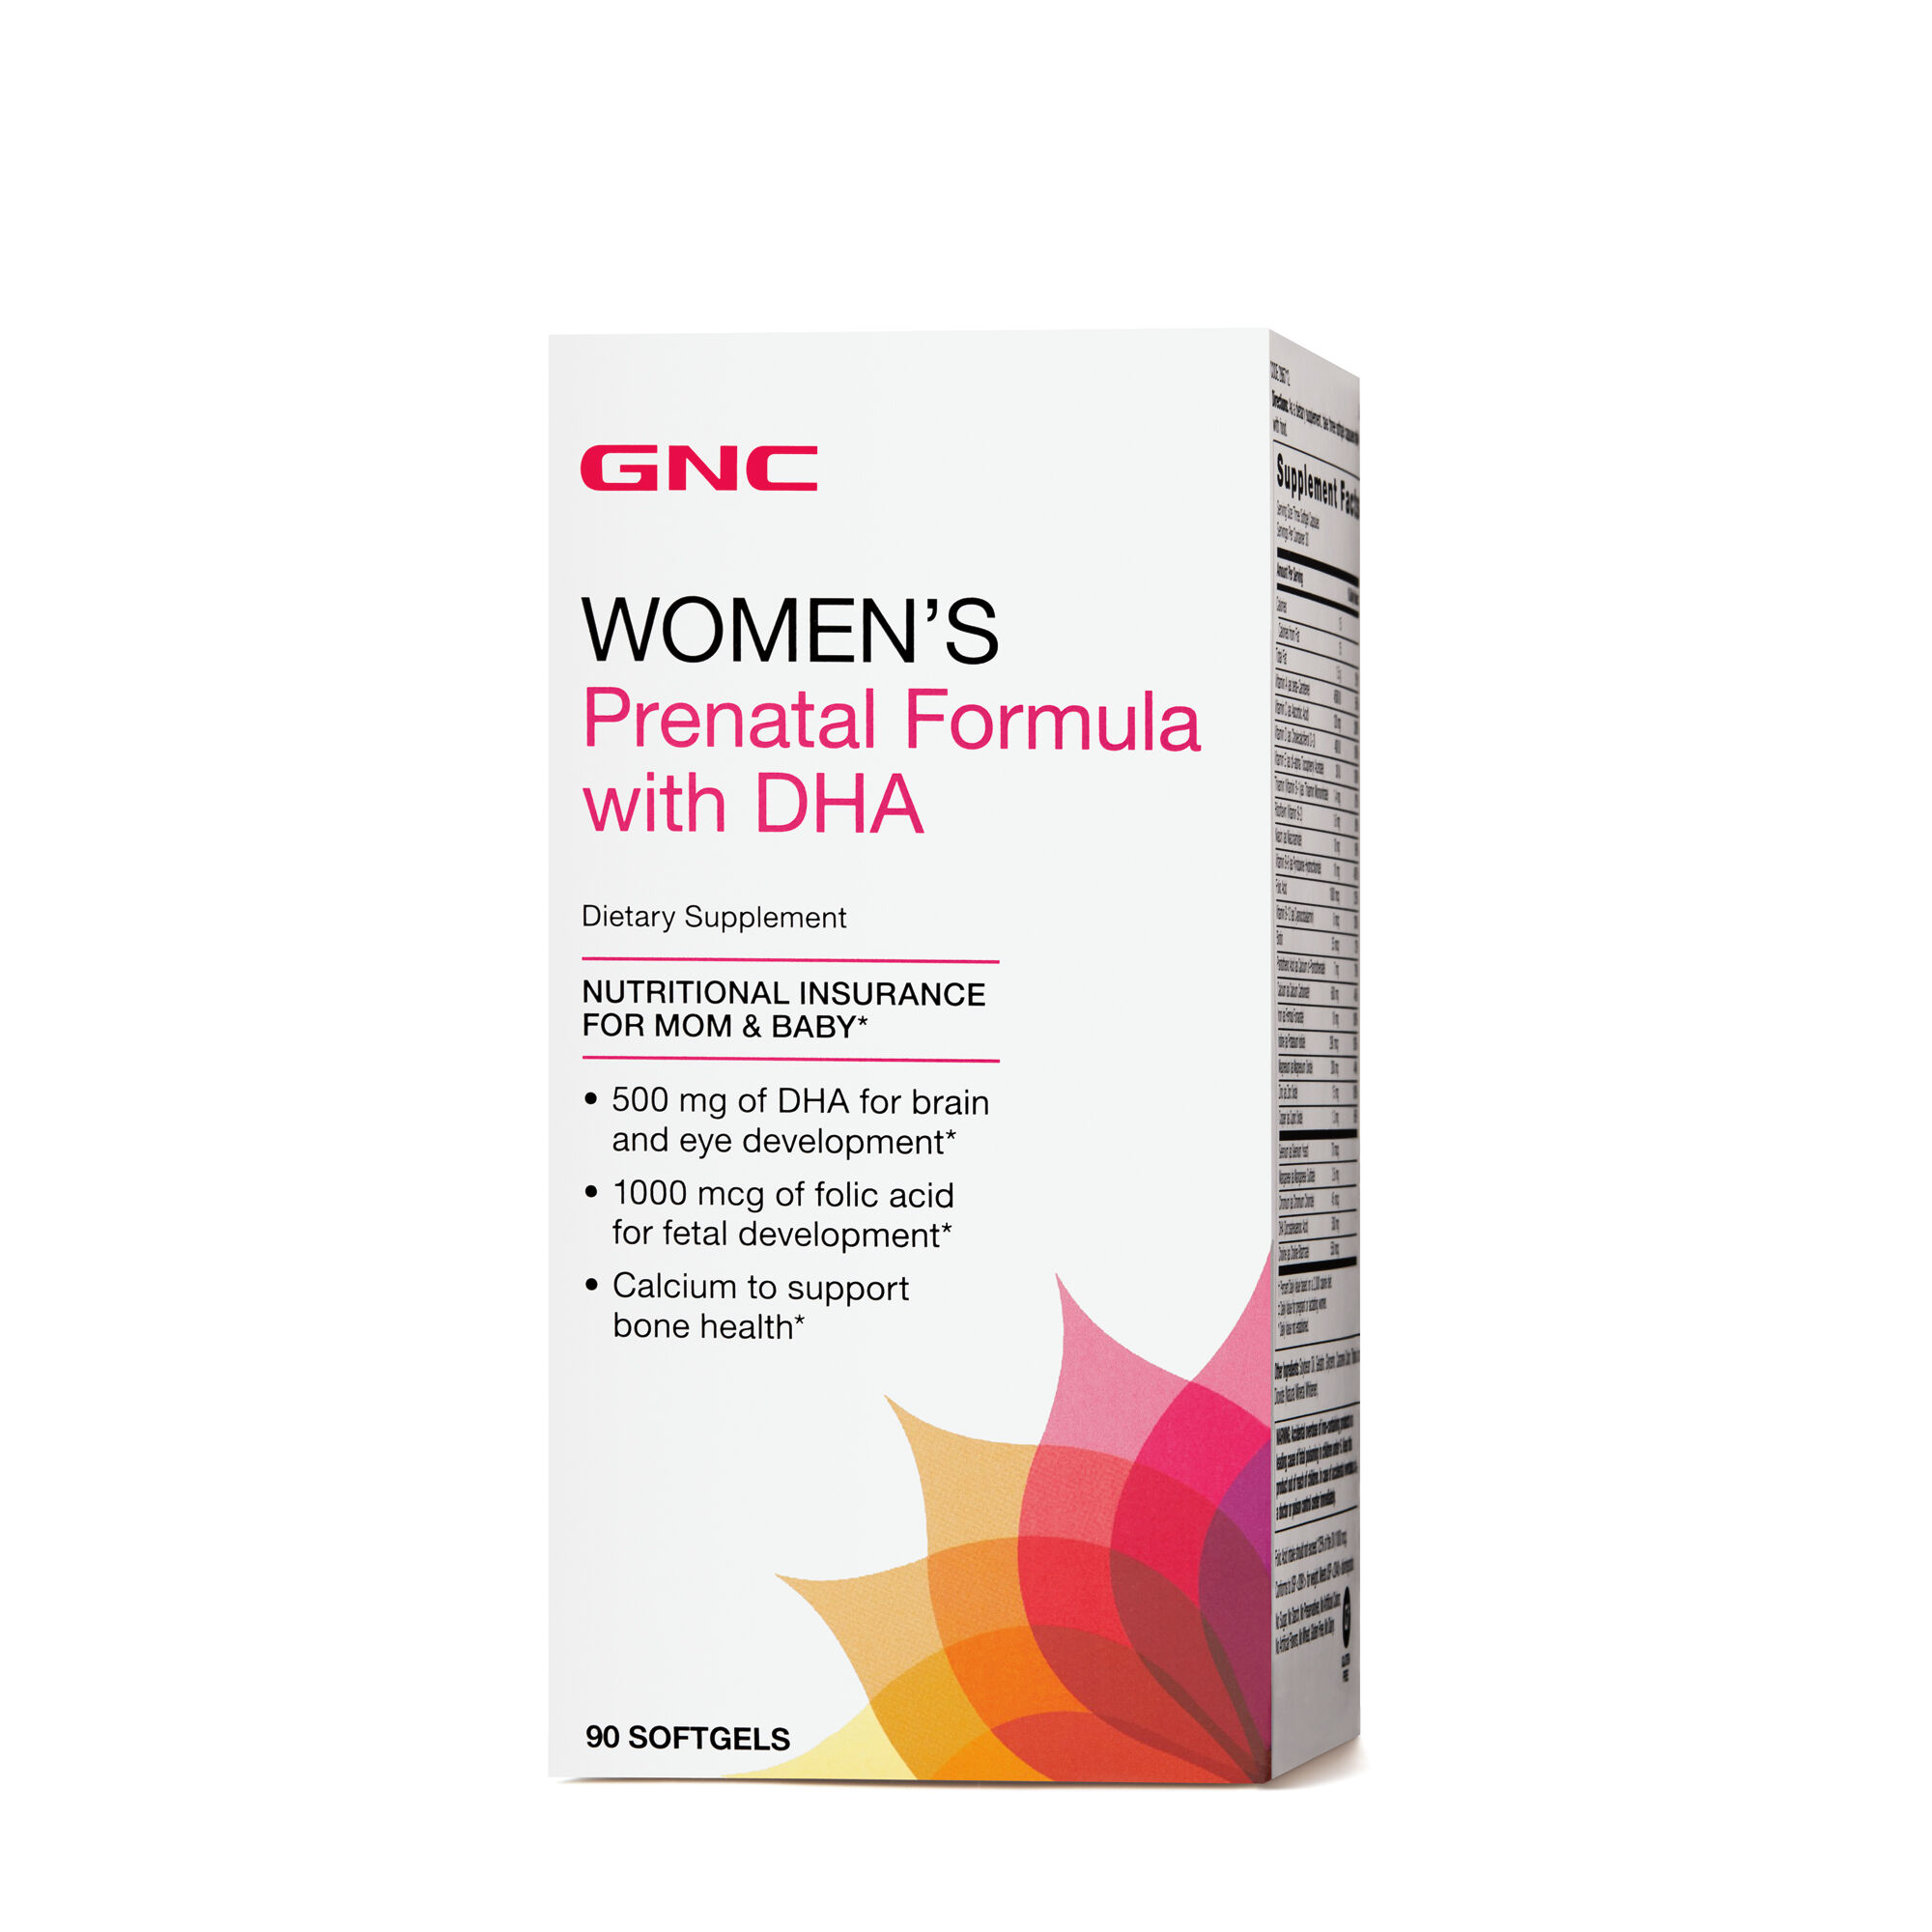 GNC Women's Prenatal Formula with DHA